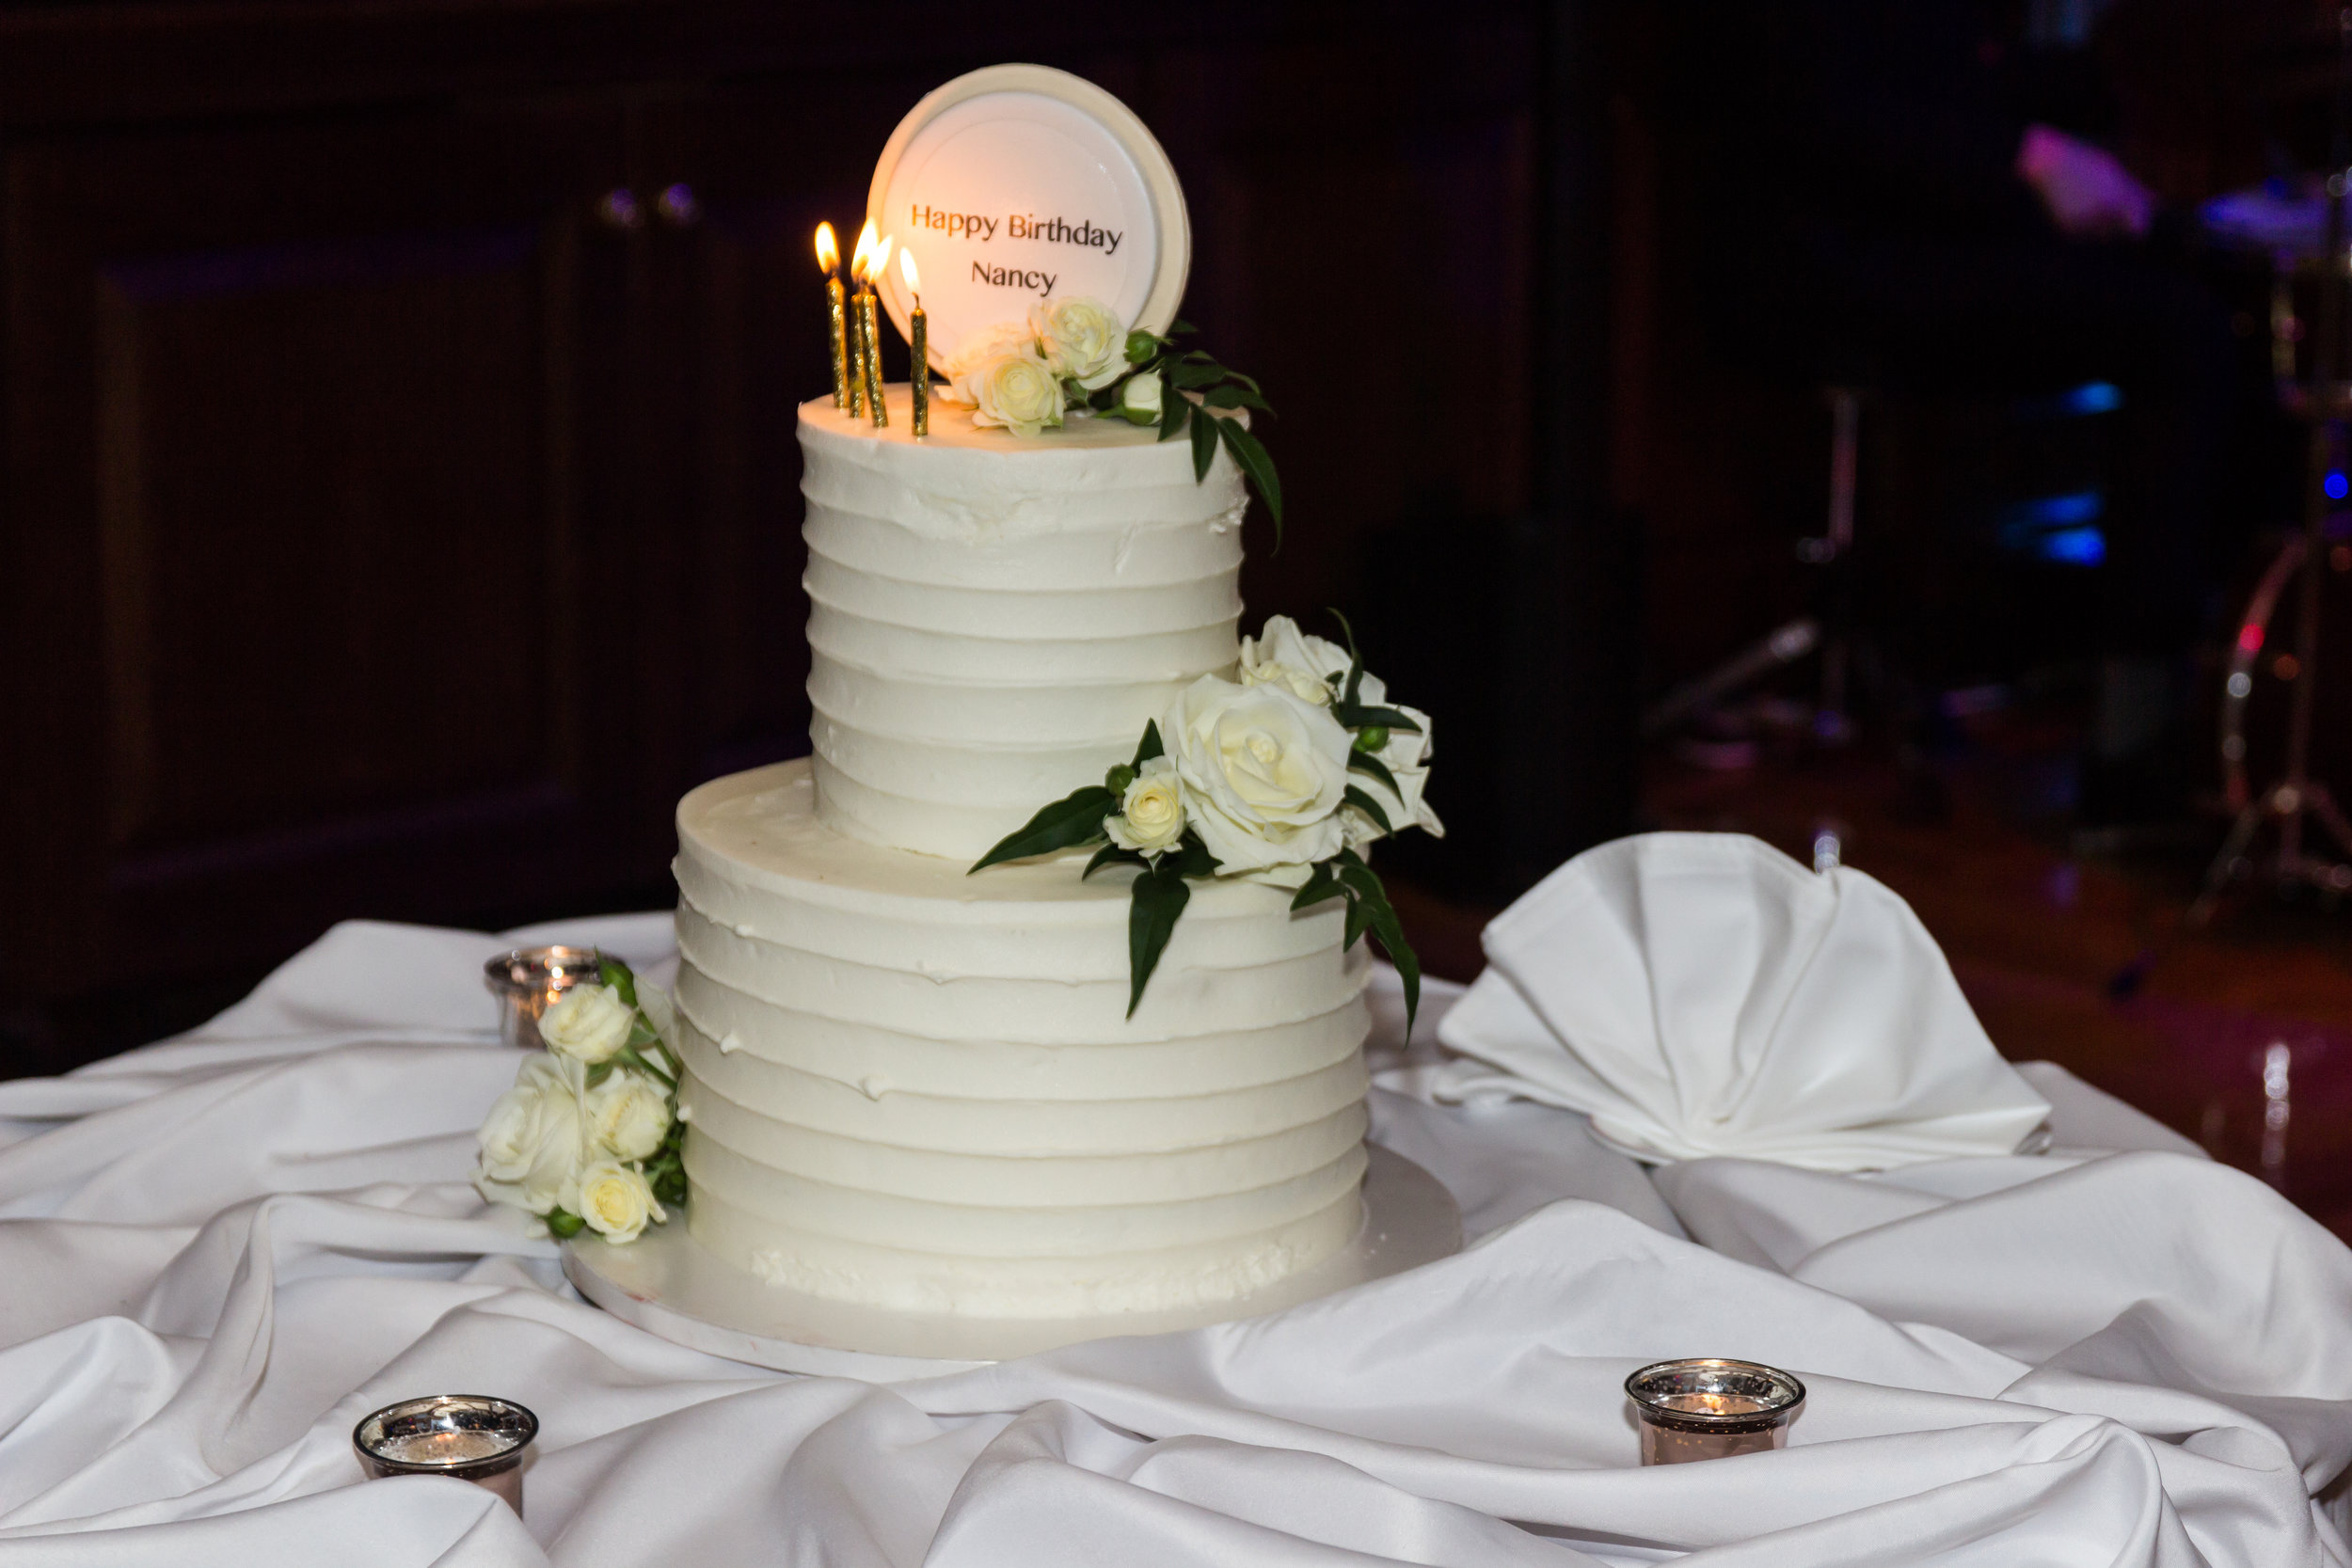 Graceful, two-tiered birthday cake